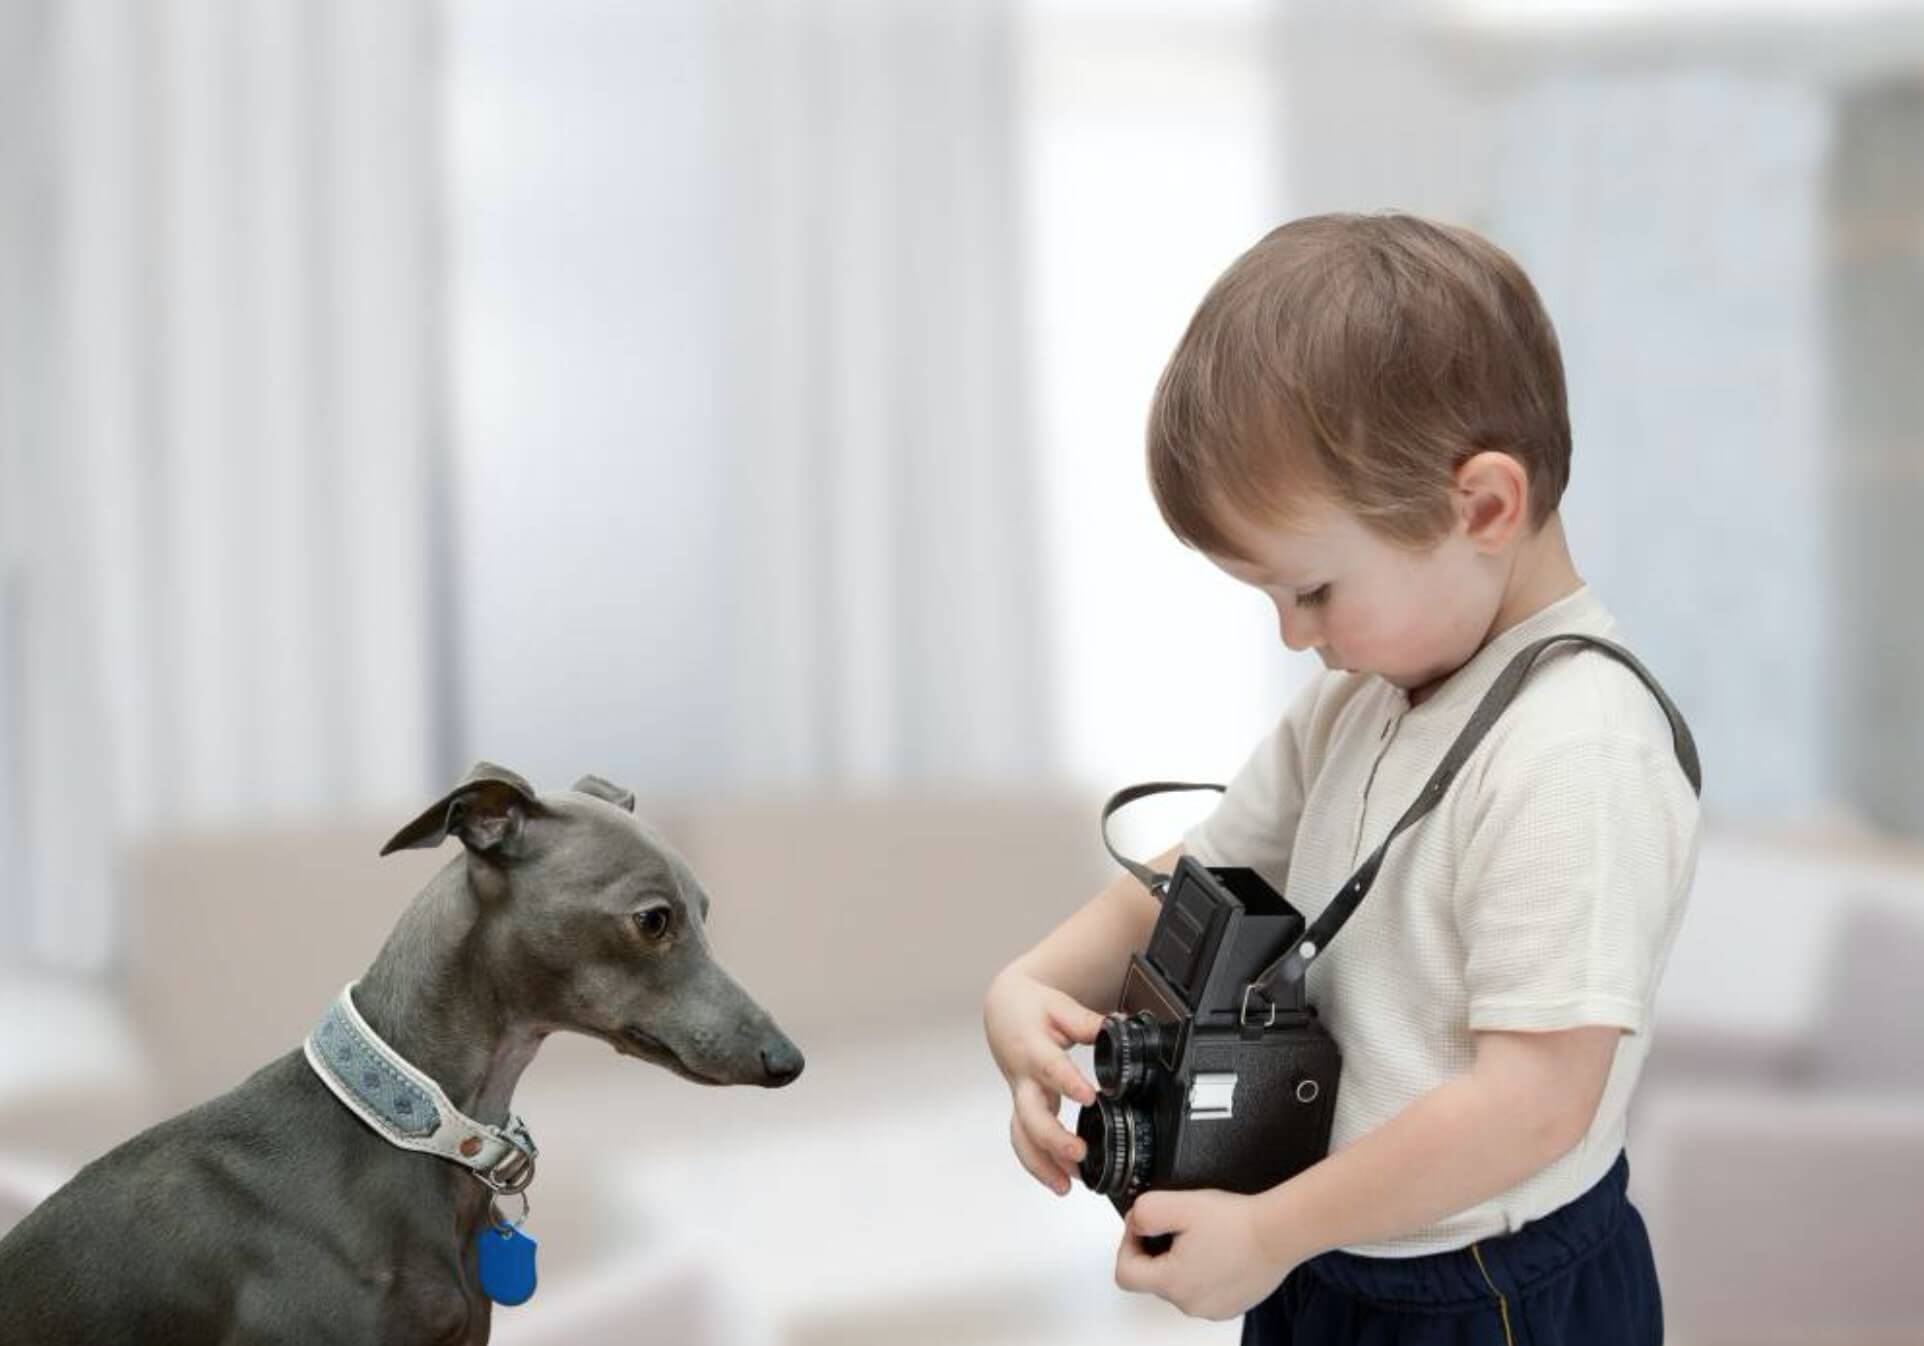 whippet dog pose for the camera with a young child pet photographer